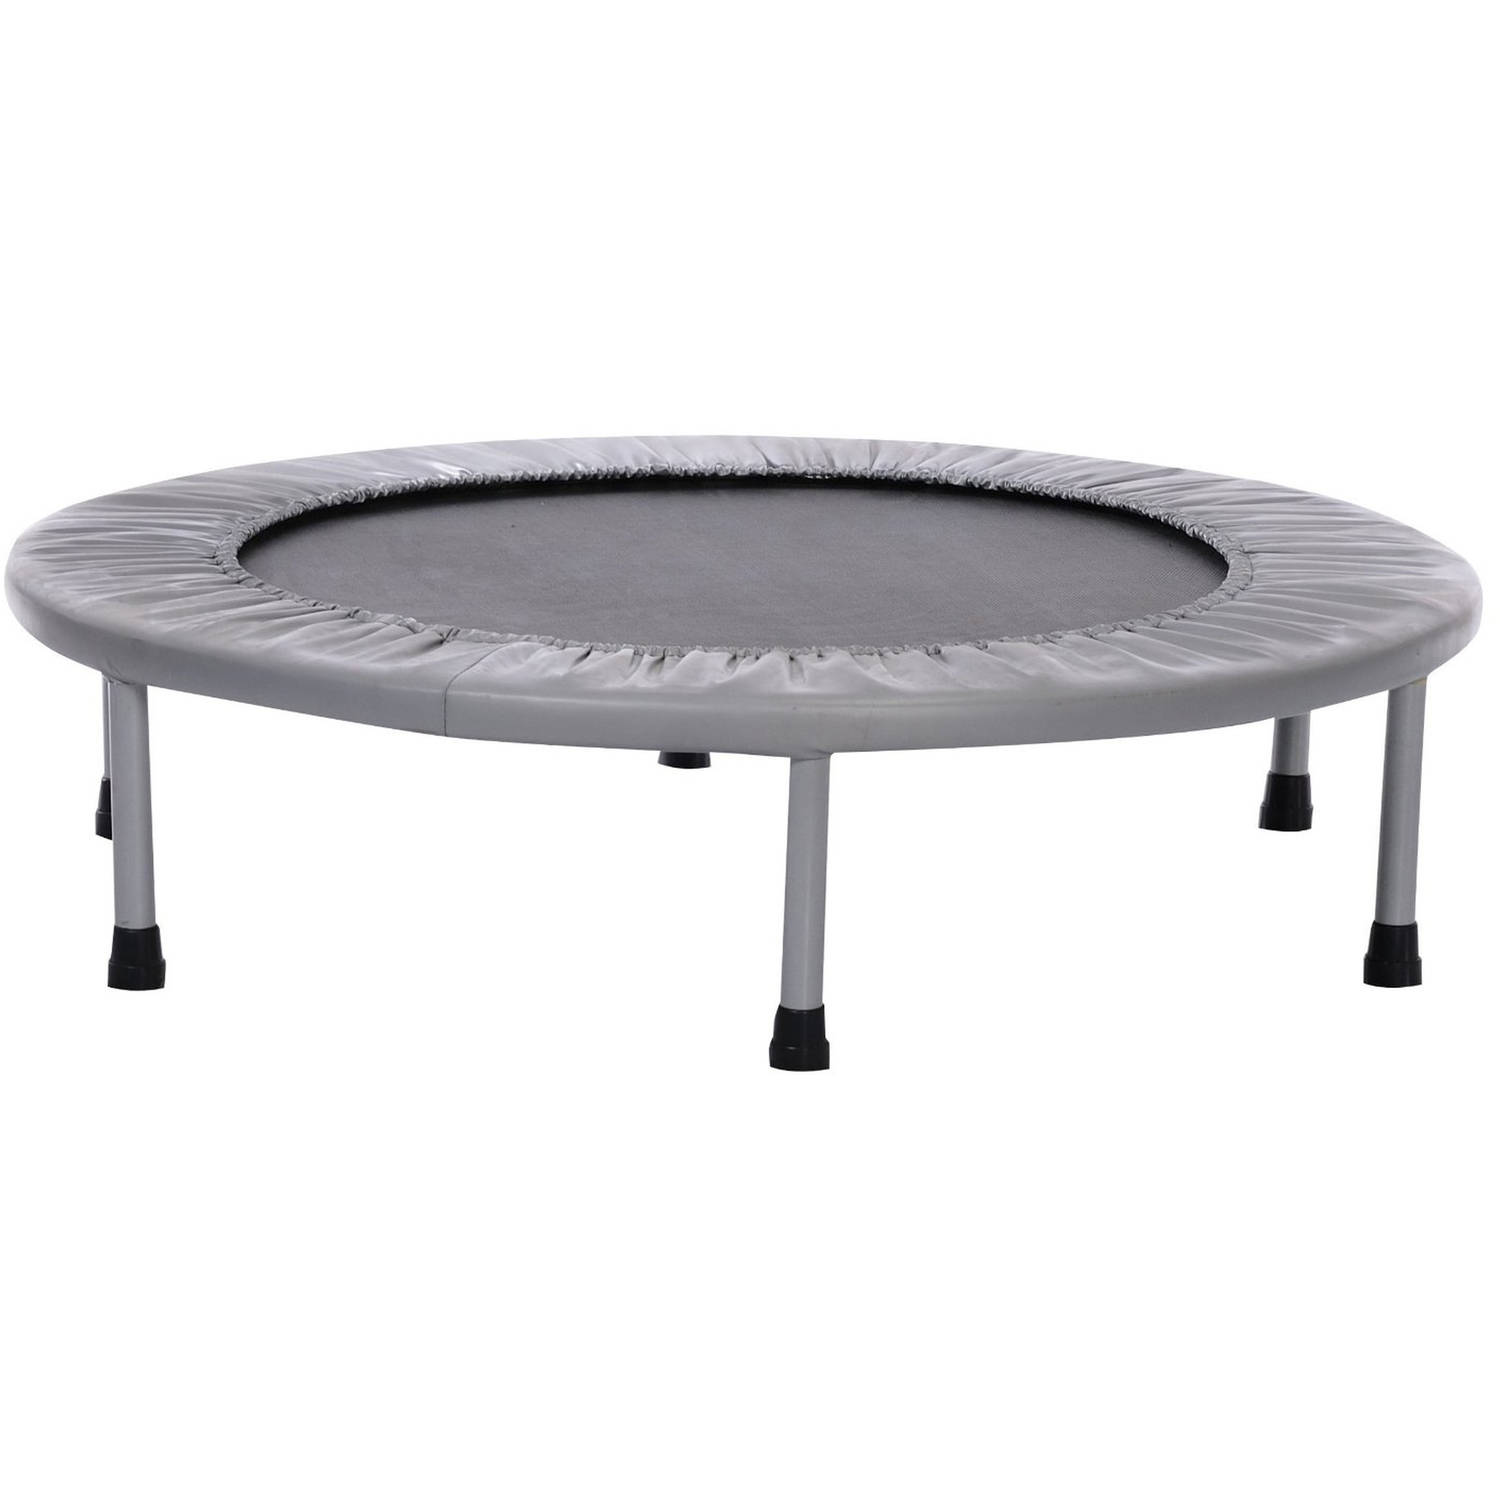 "Sunny Health and Fitness 36"" Trampoline"